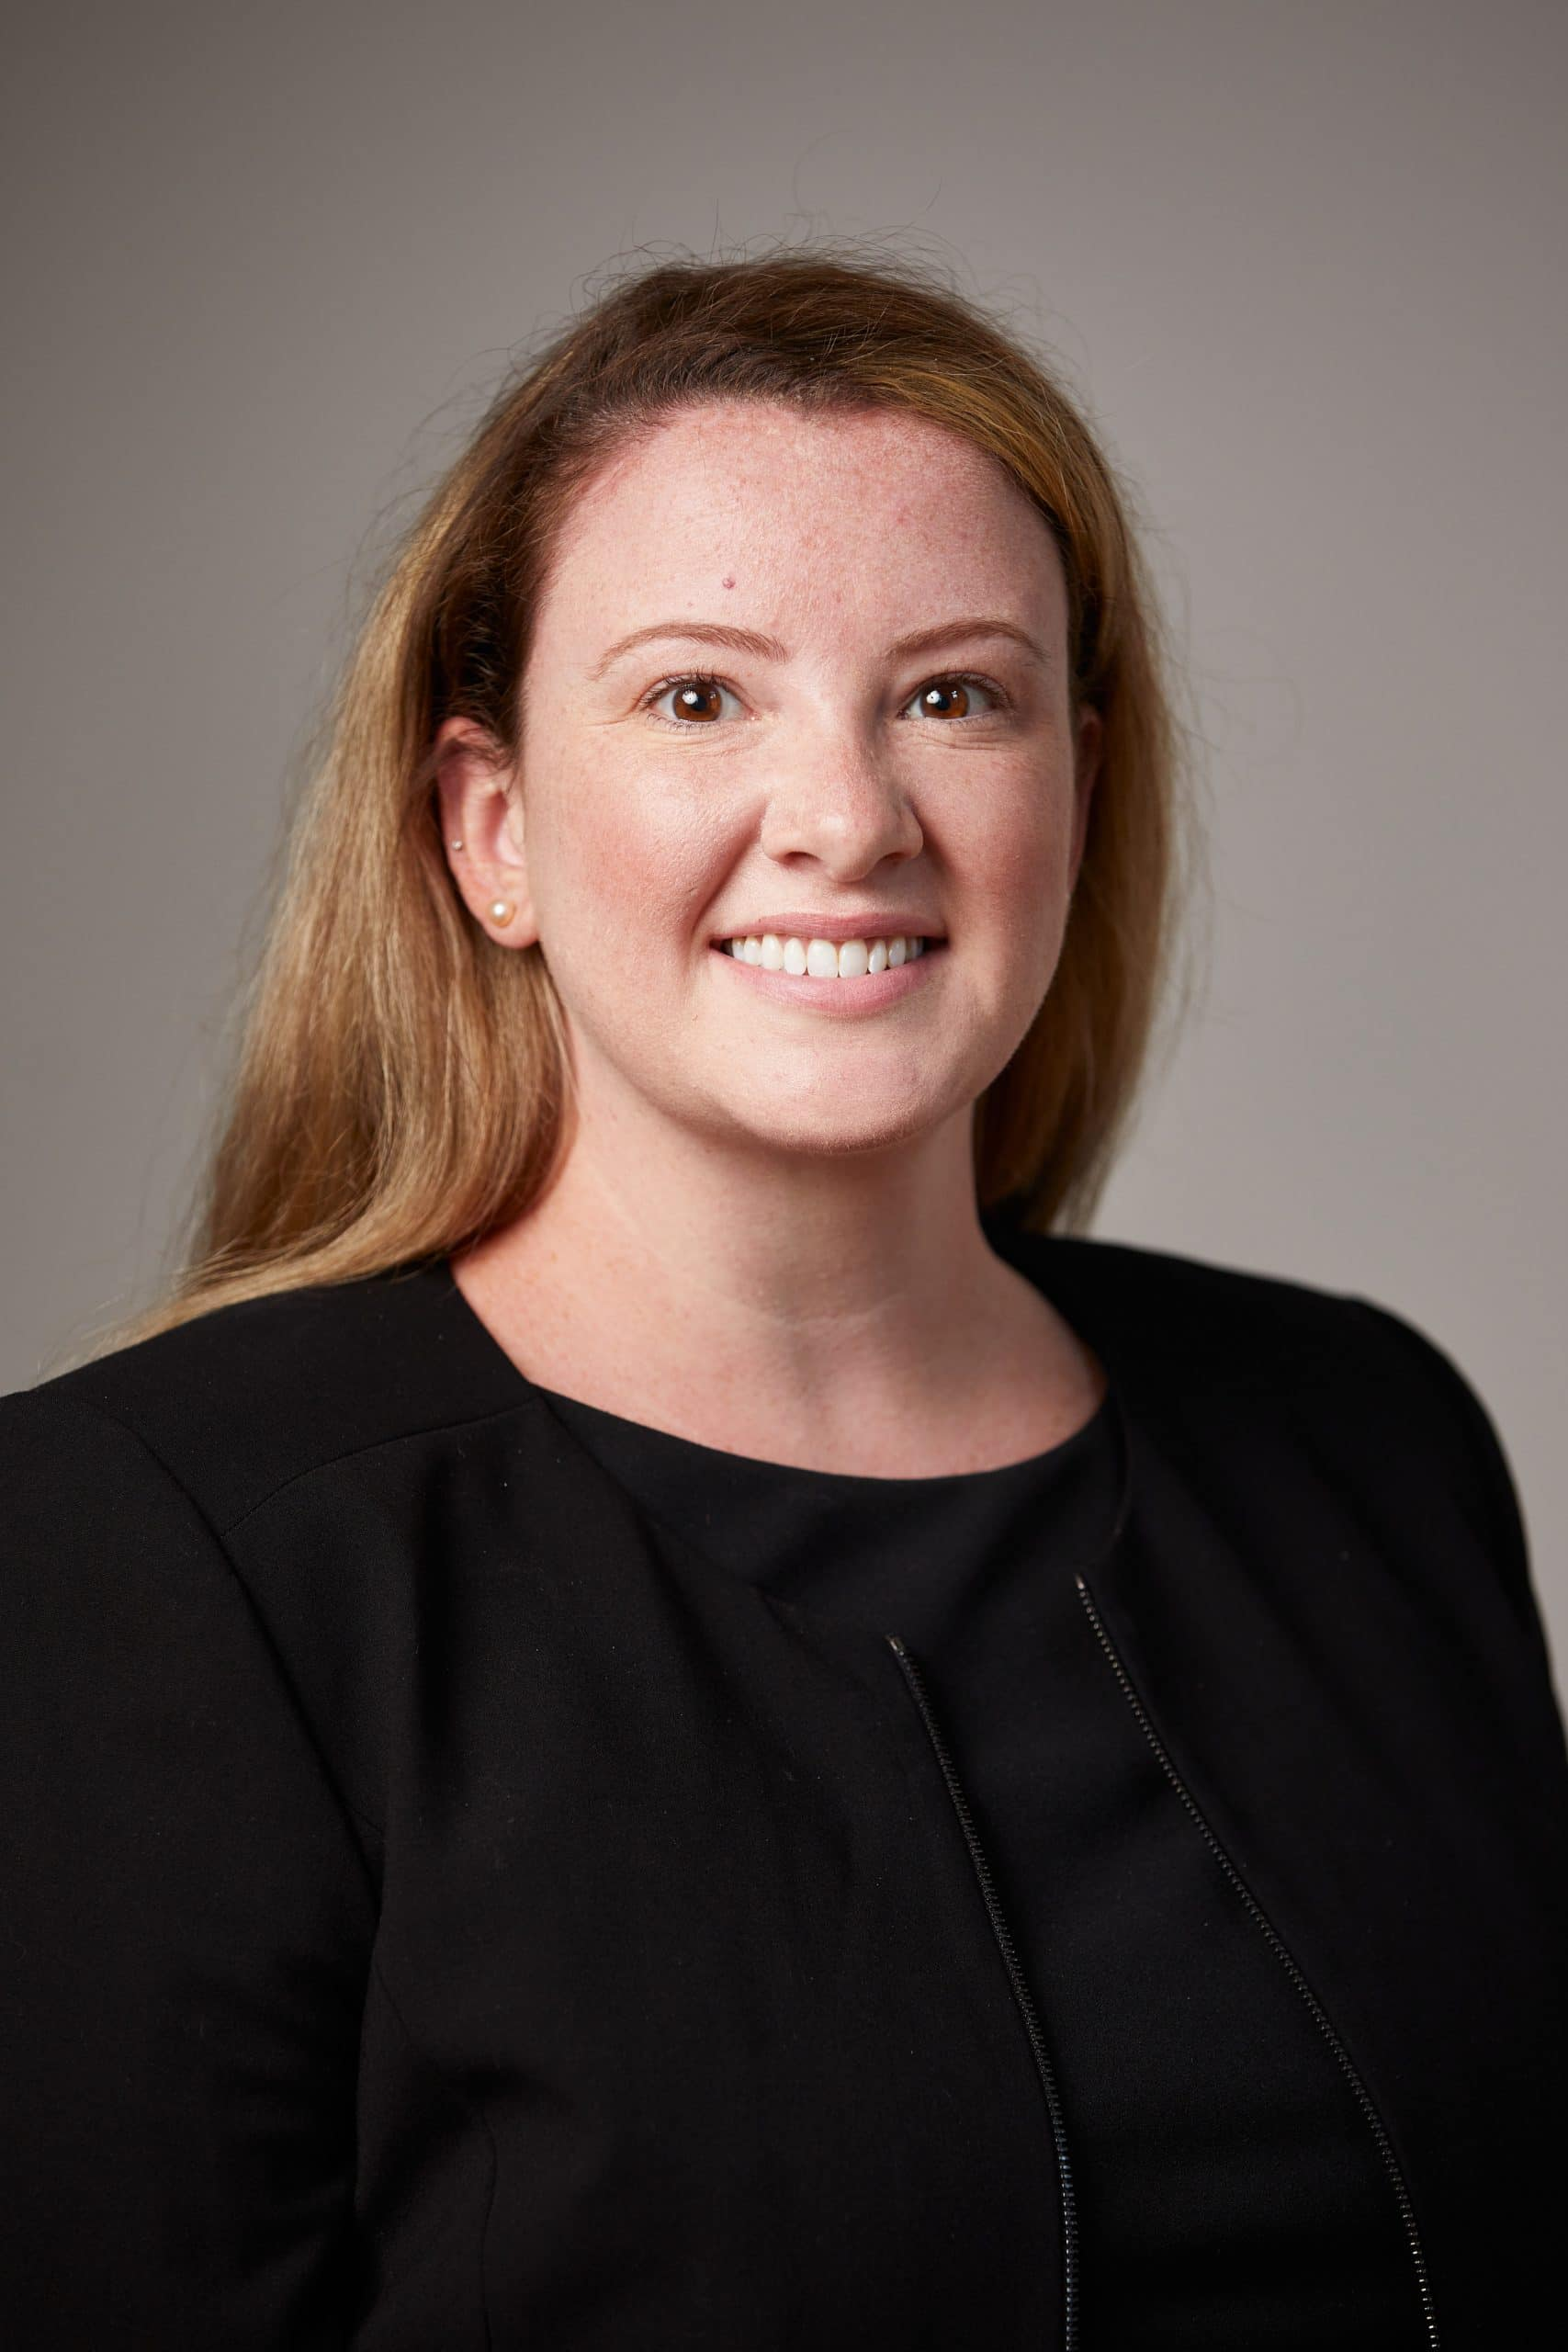 Florio Perrucci Welcomes New Associate, Colleen Degnan